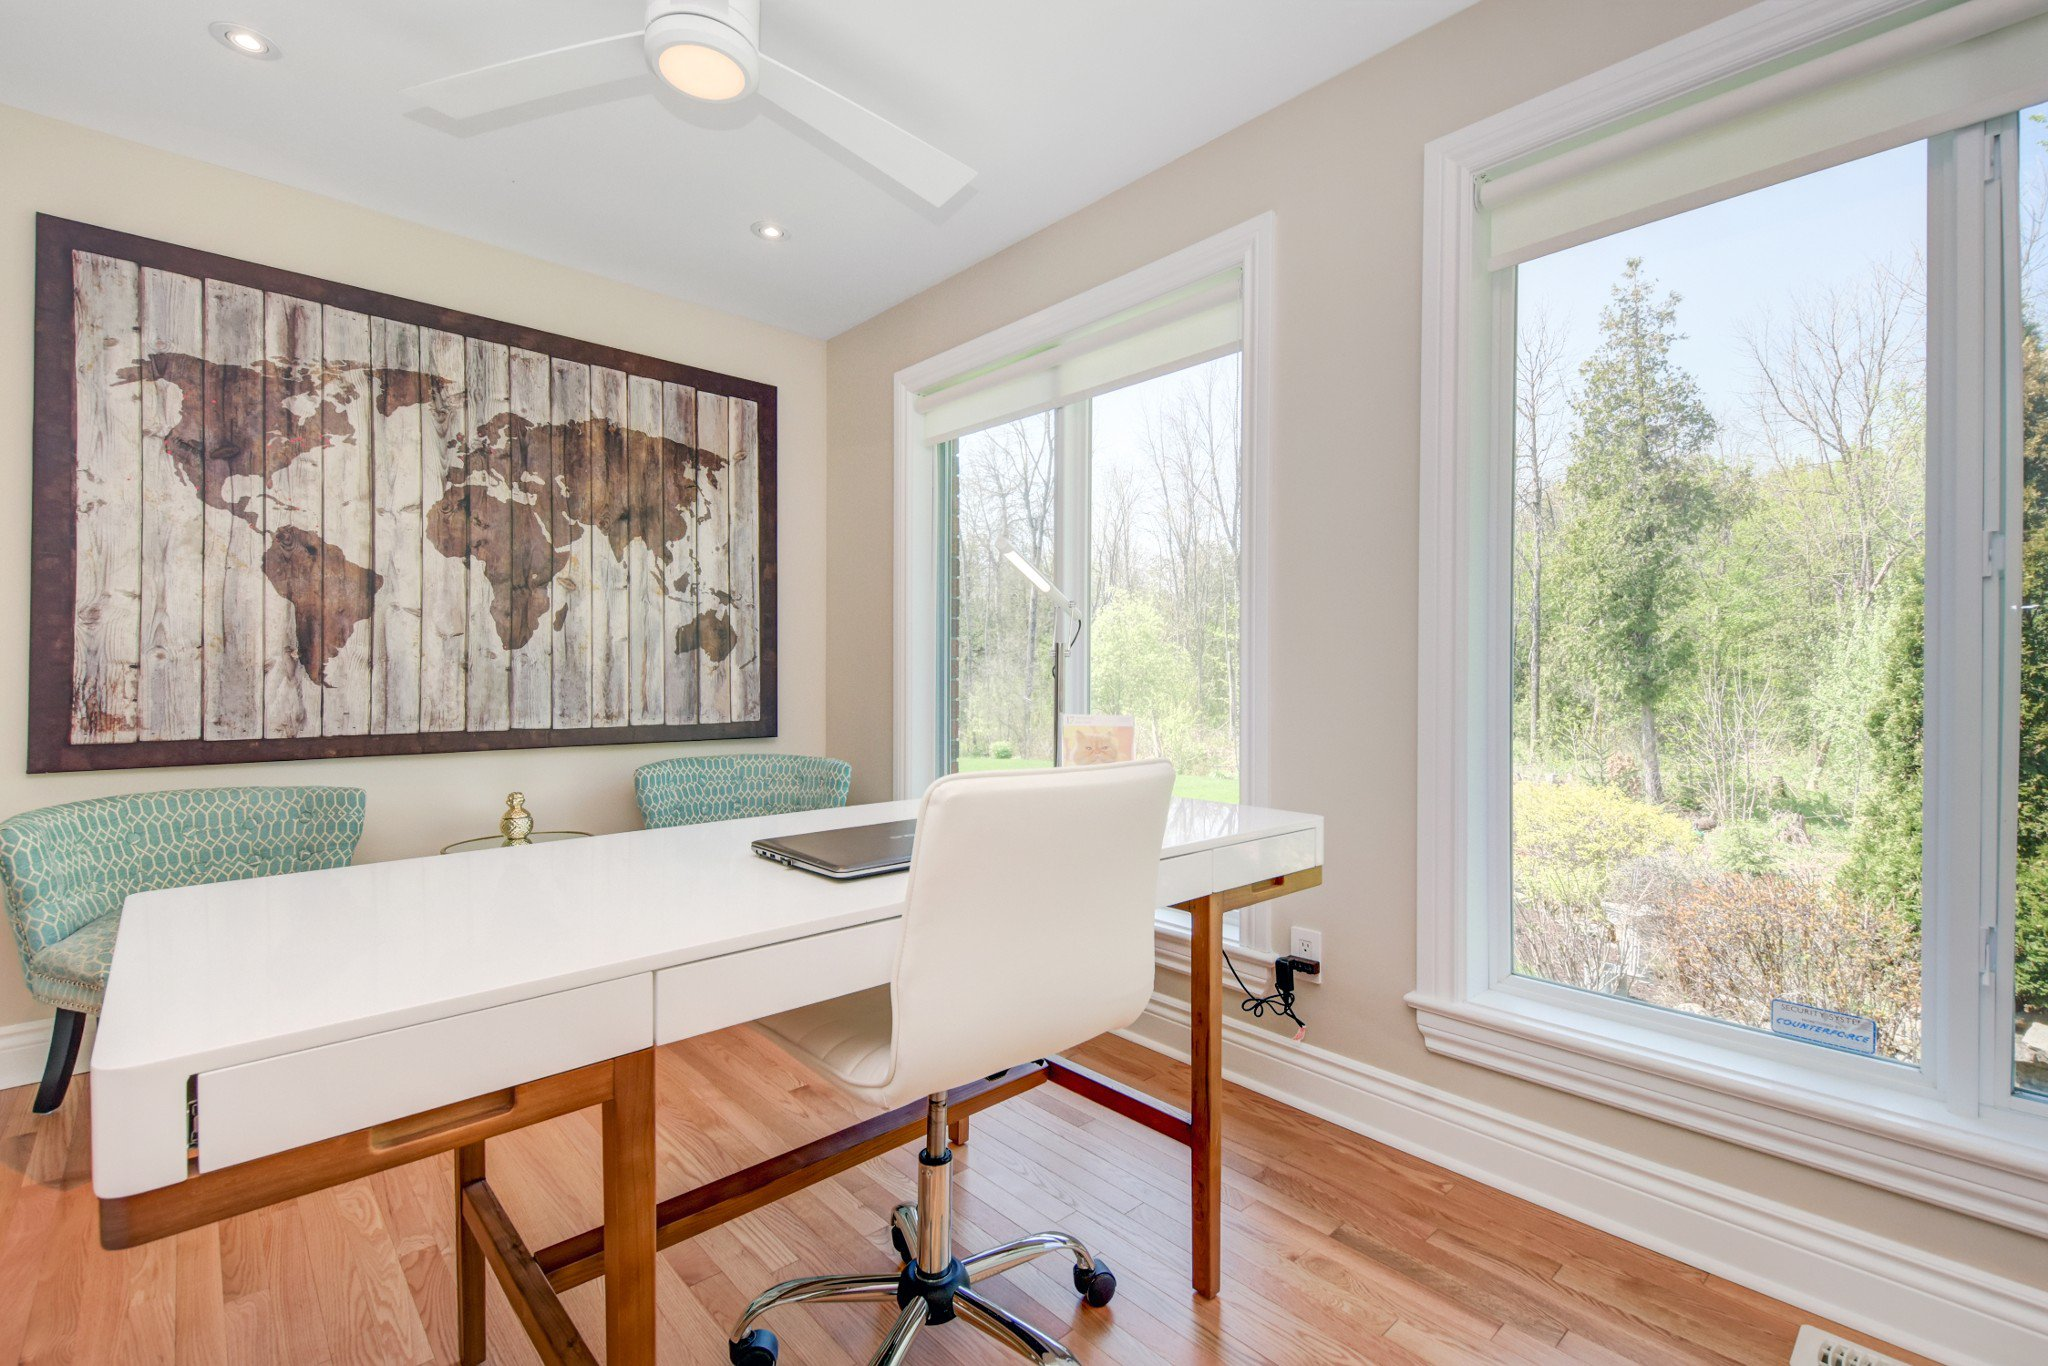 Photo 35: Photos: 1490 REINDEER WAY.: Greely House for sale (Ottawa)  : MLS®# 1109530